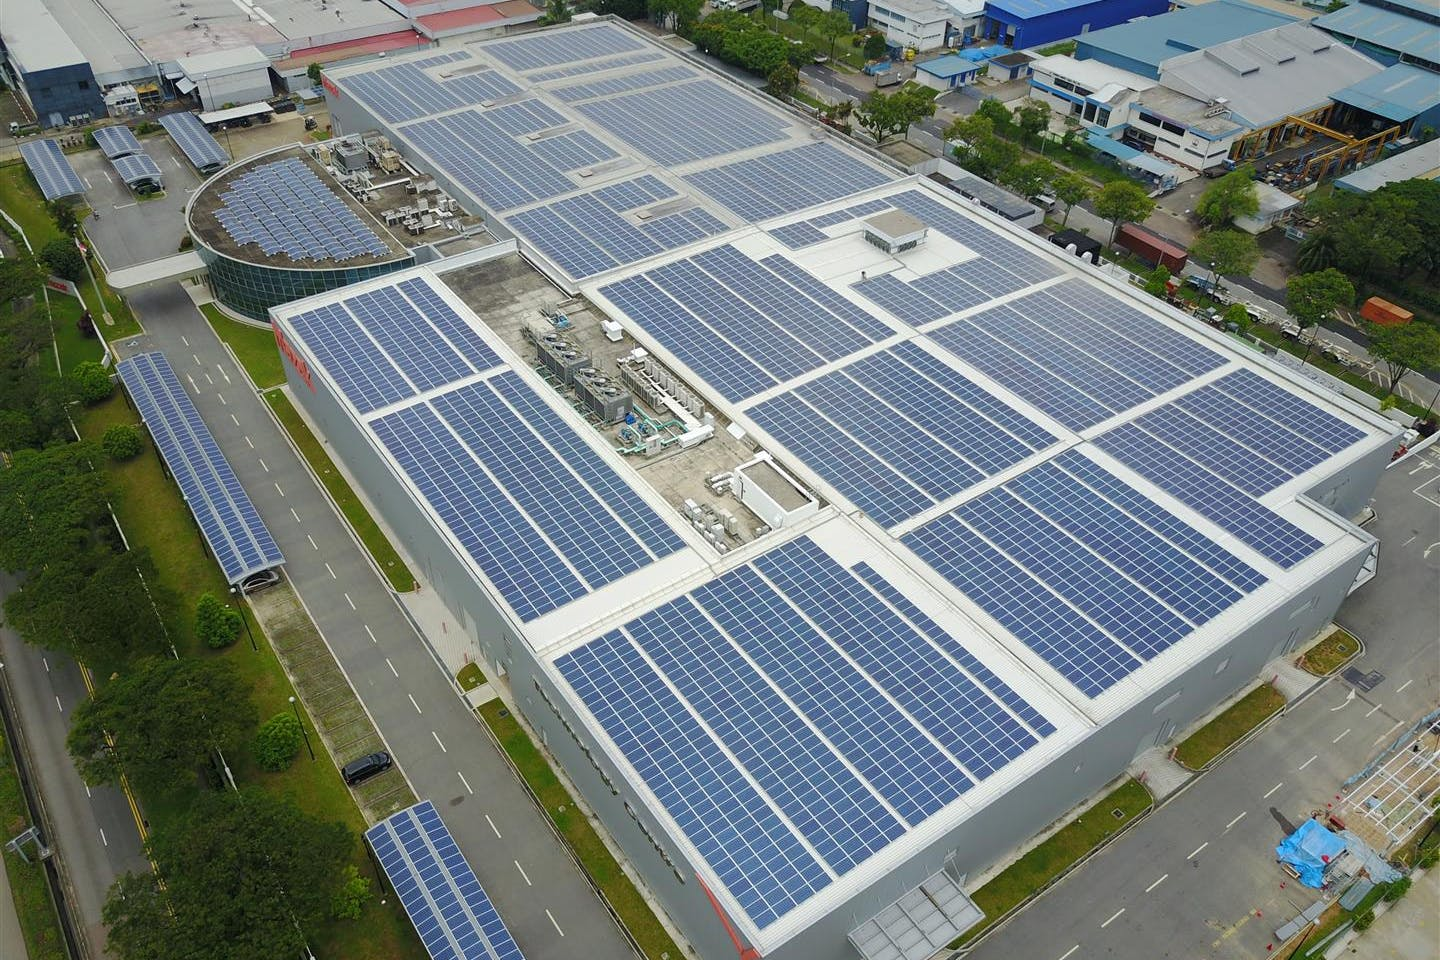 Yamazaki Mazak and Cleantech Solar celebrate the commissioning of brand-new 1.6MWp rooftop solar PV system